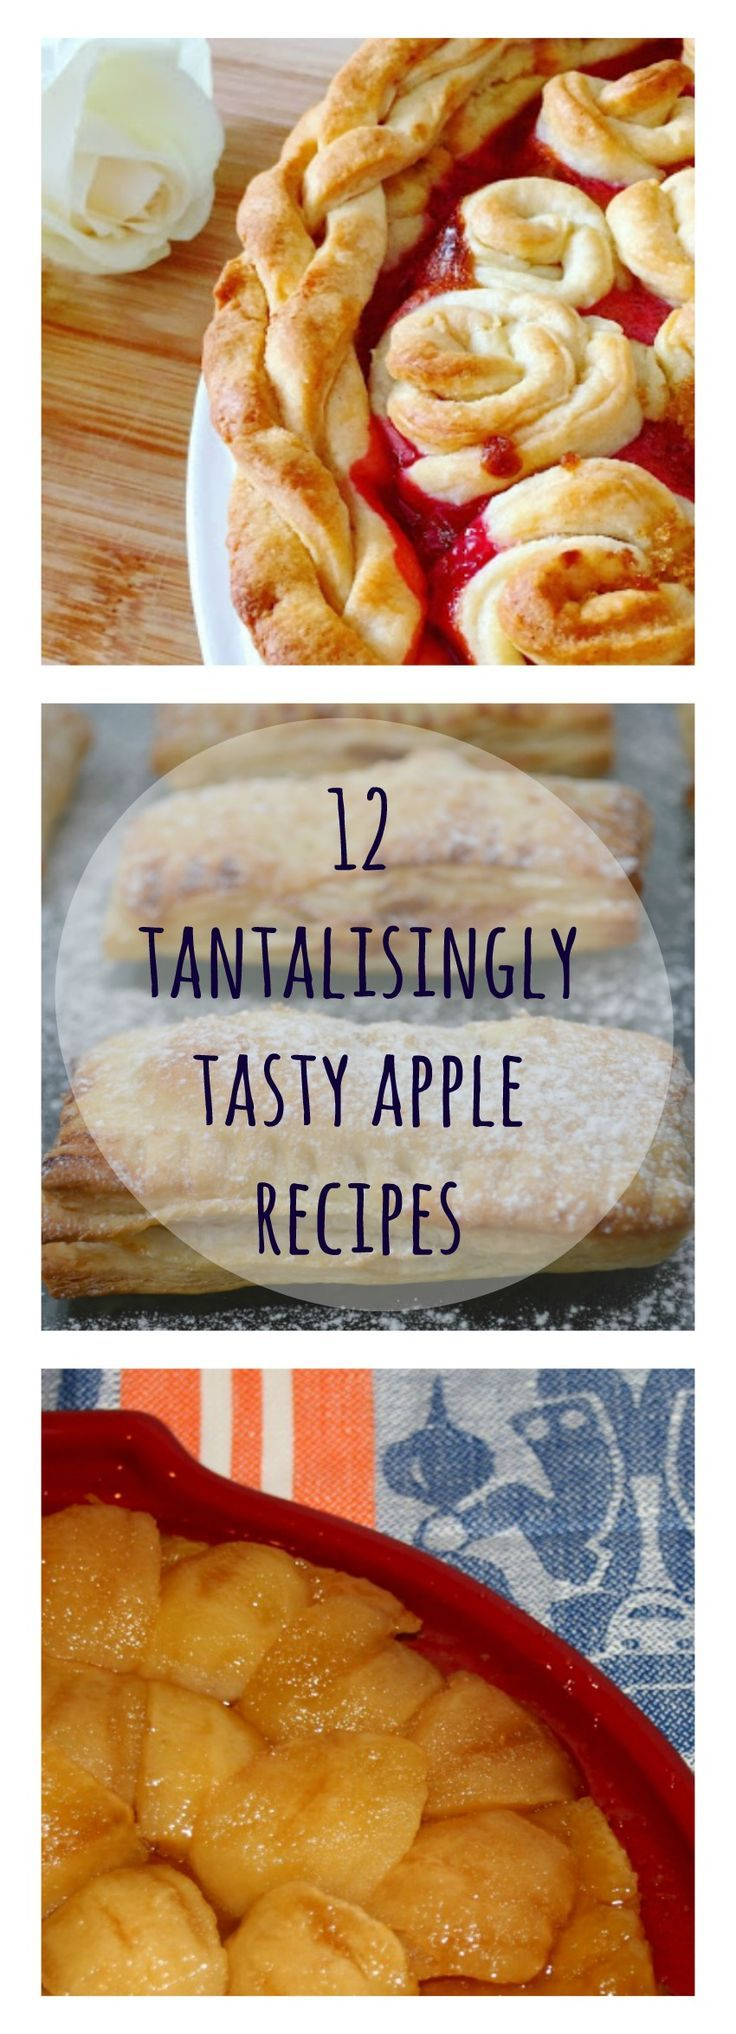 A collection of outstanding and tantalisingly tasty apple recipes form some of the best UK food bloggers. Easy apple recipes that just look and taste amazing. Dive on in! Let me know which is your favourite apple dish